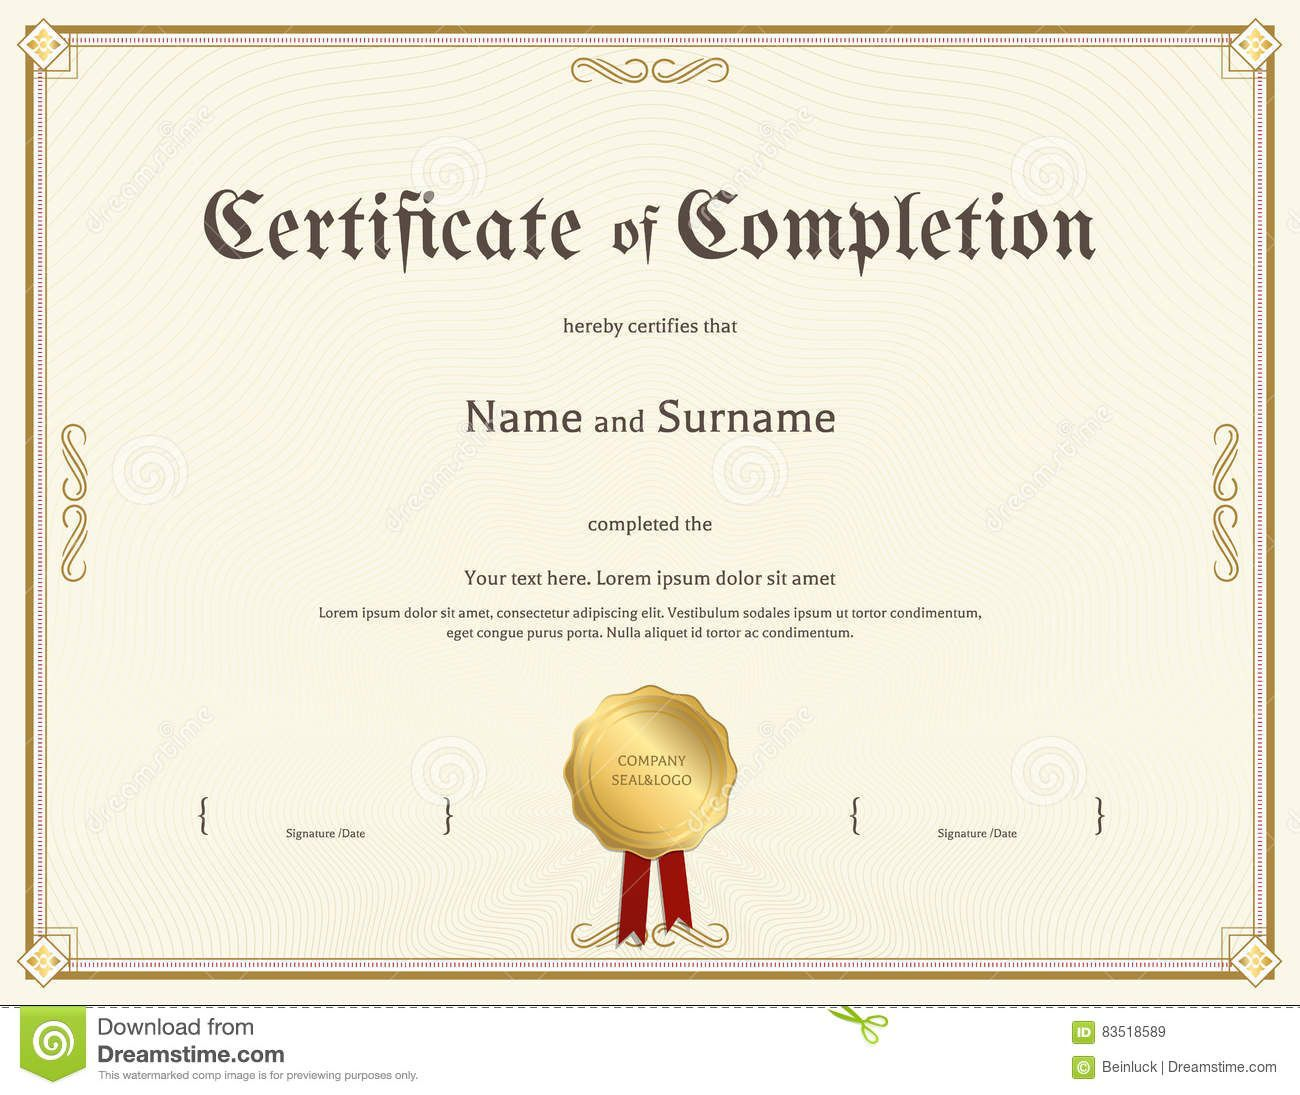 003 Awesome Free Certificate Of Completion Template Picture  Blank Printable Download Word PdfFull